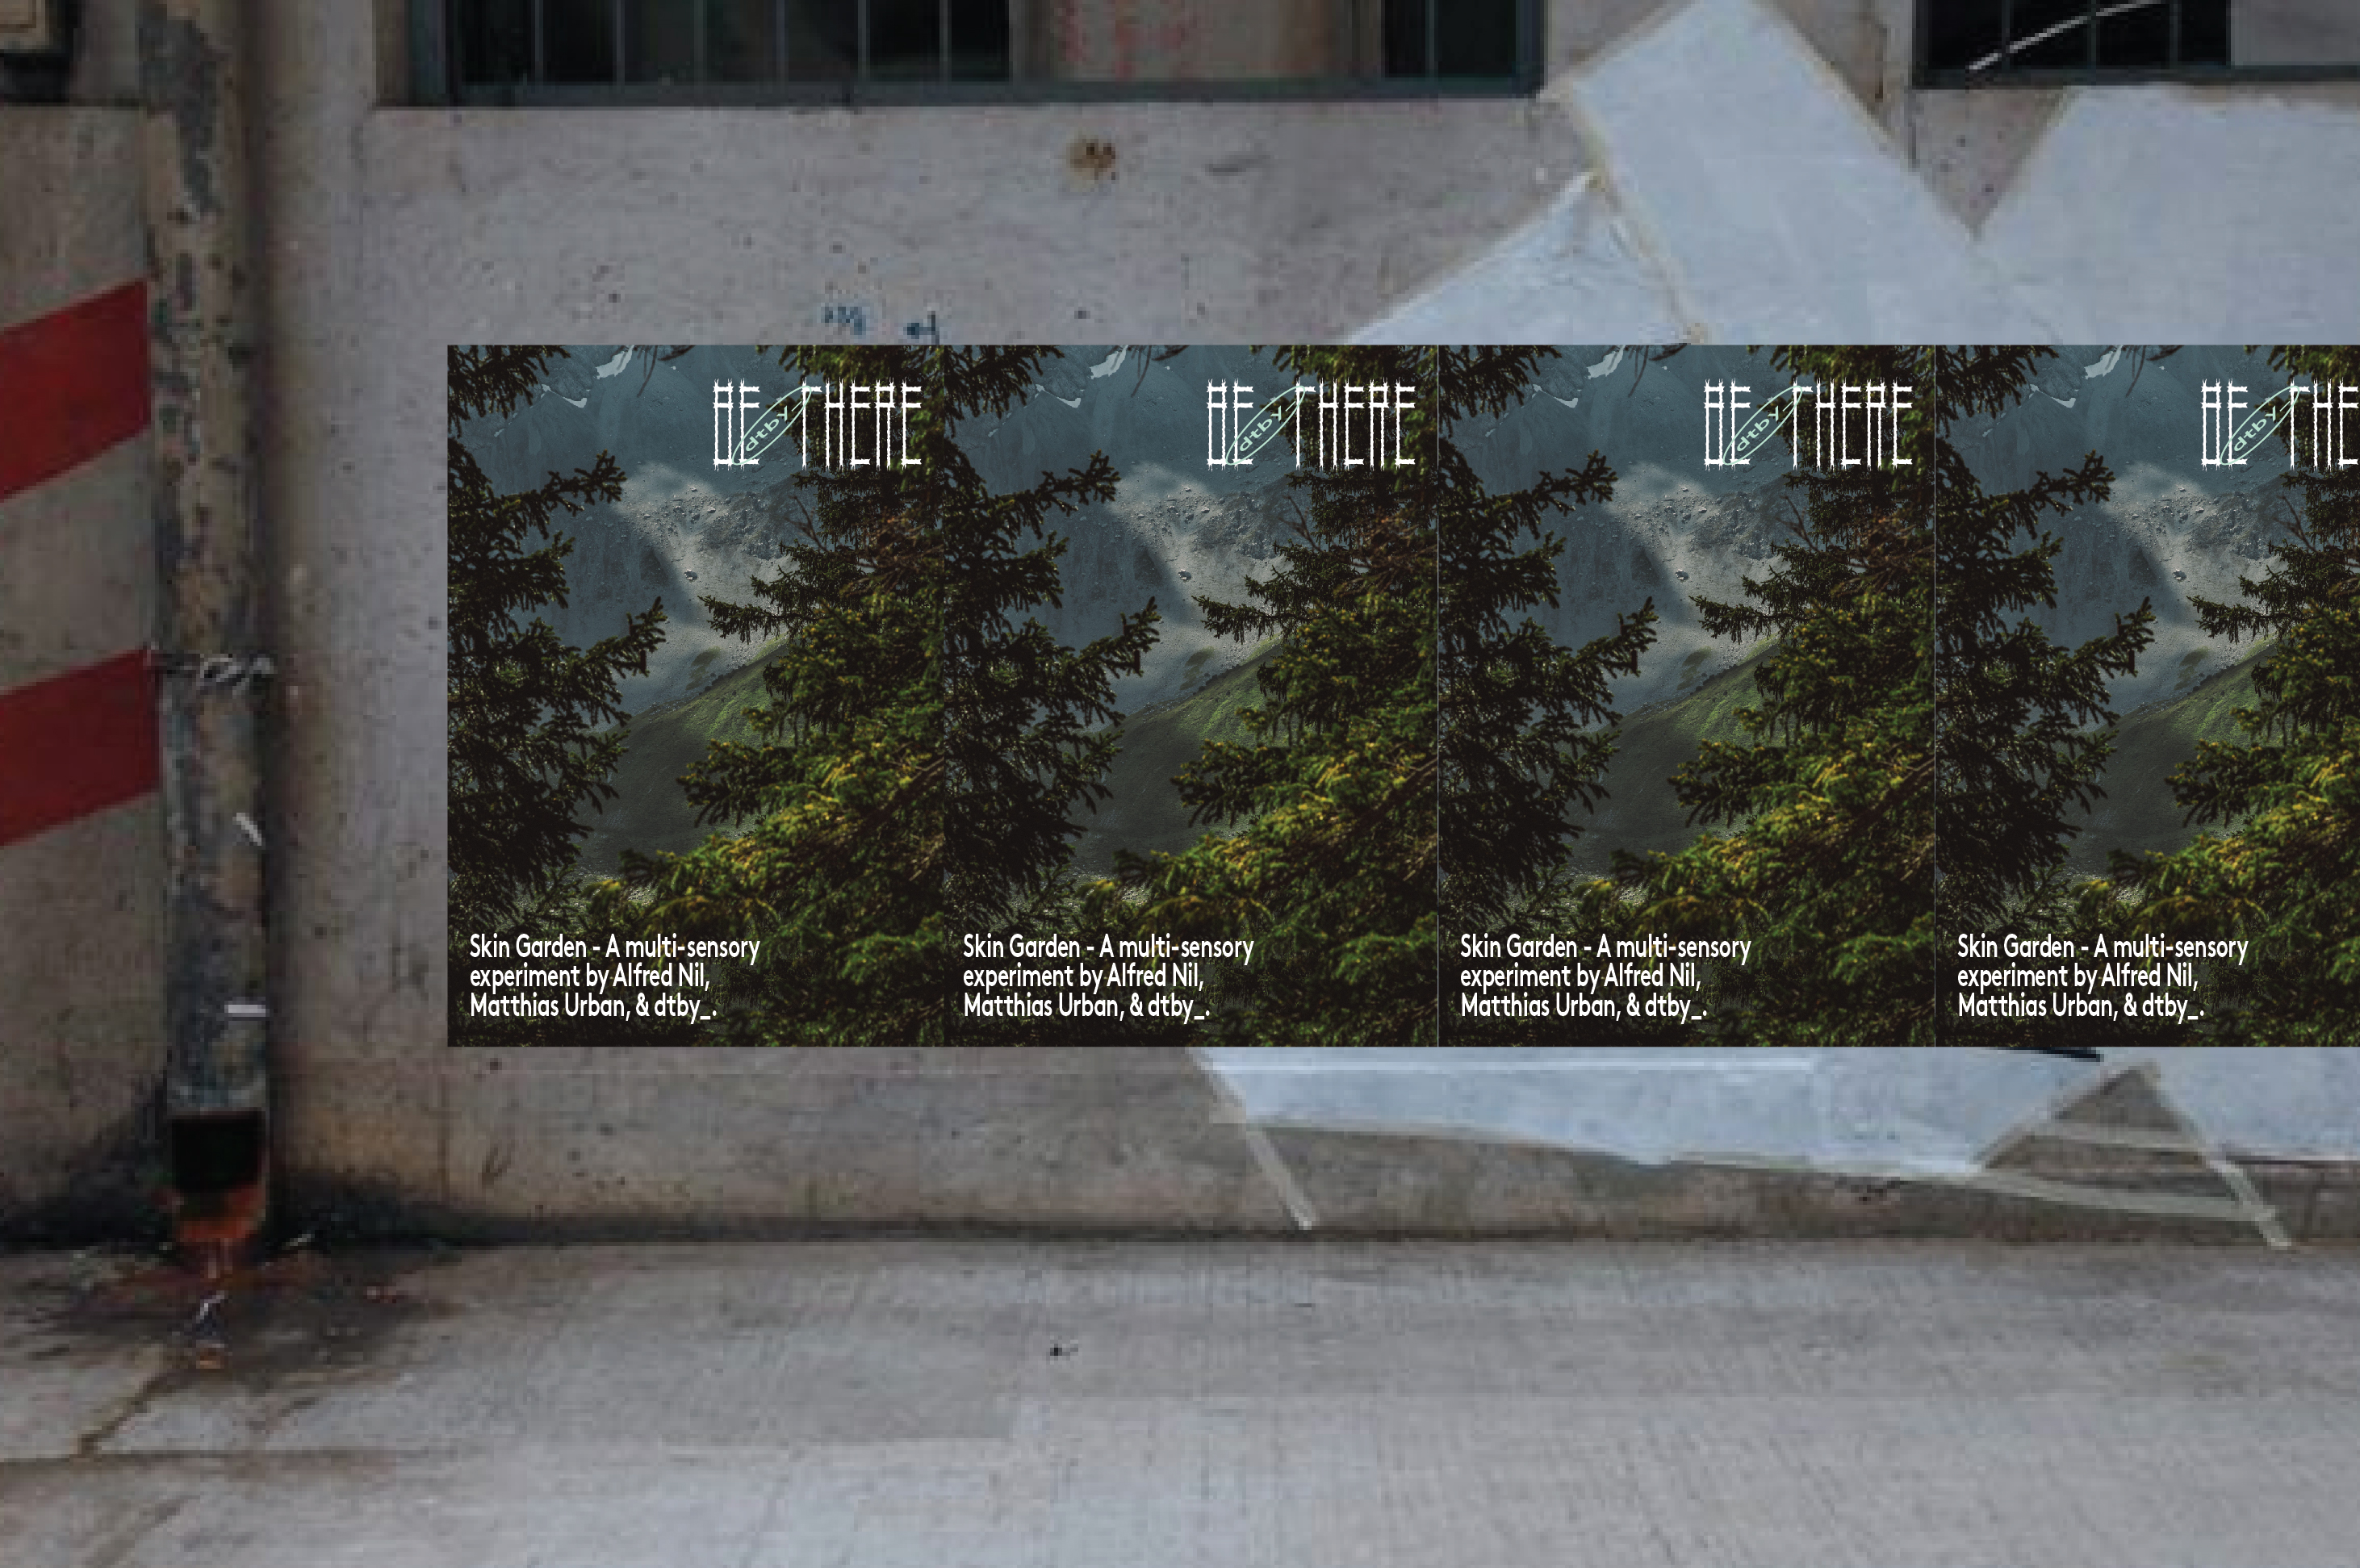 Bill poster for BE THERE - Design Festival in Sham Shui Po by dtby_, Ron Wan, and Mildred Cheng.